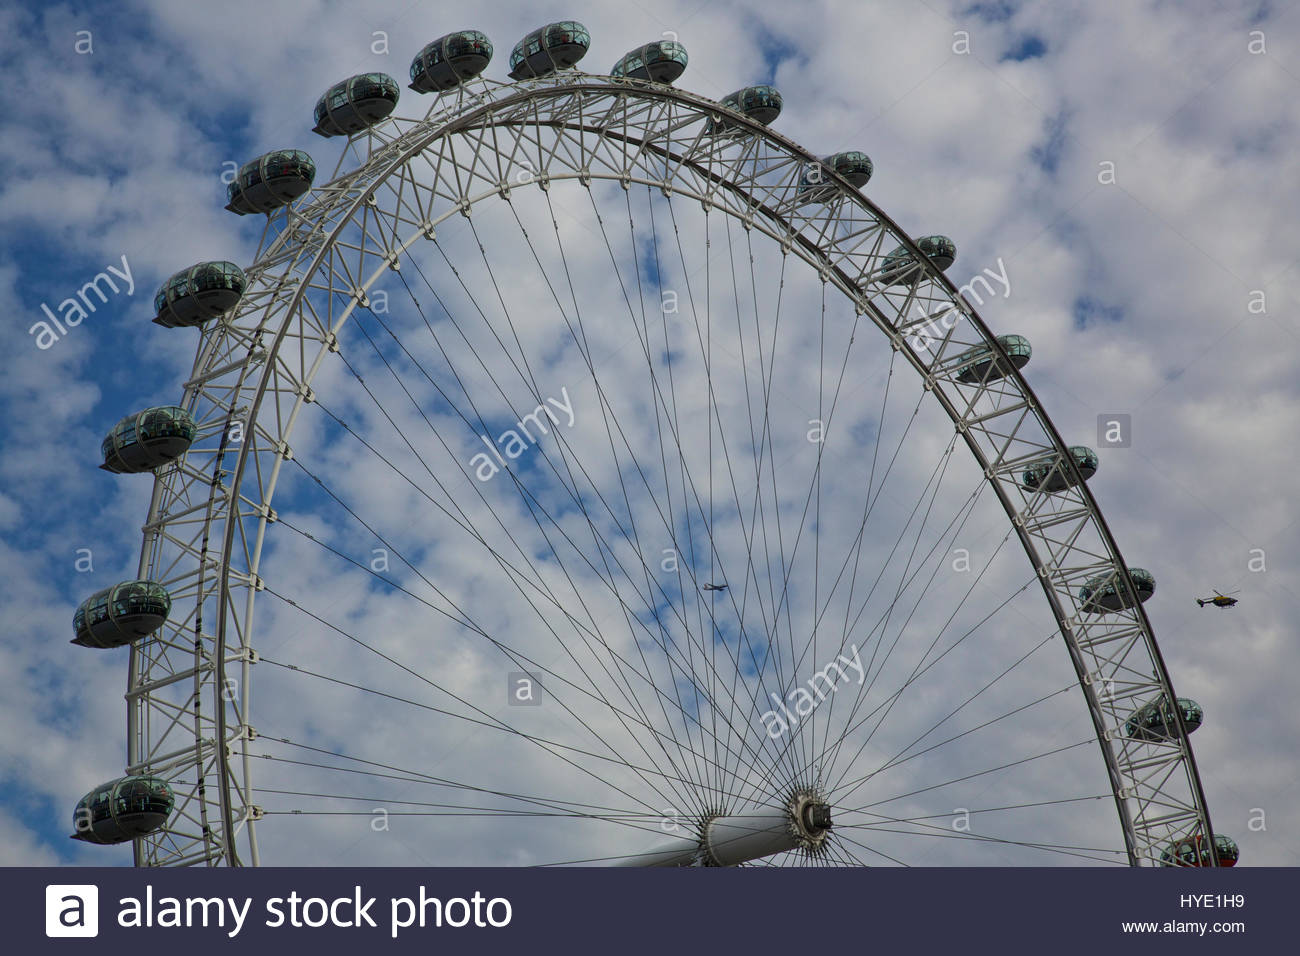 The London Eye against a cloudy sky with a helicopter nearby. - Stock Image